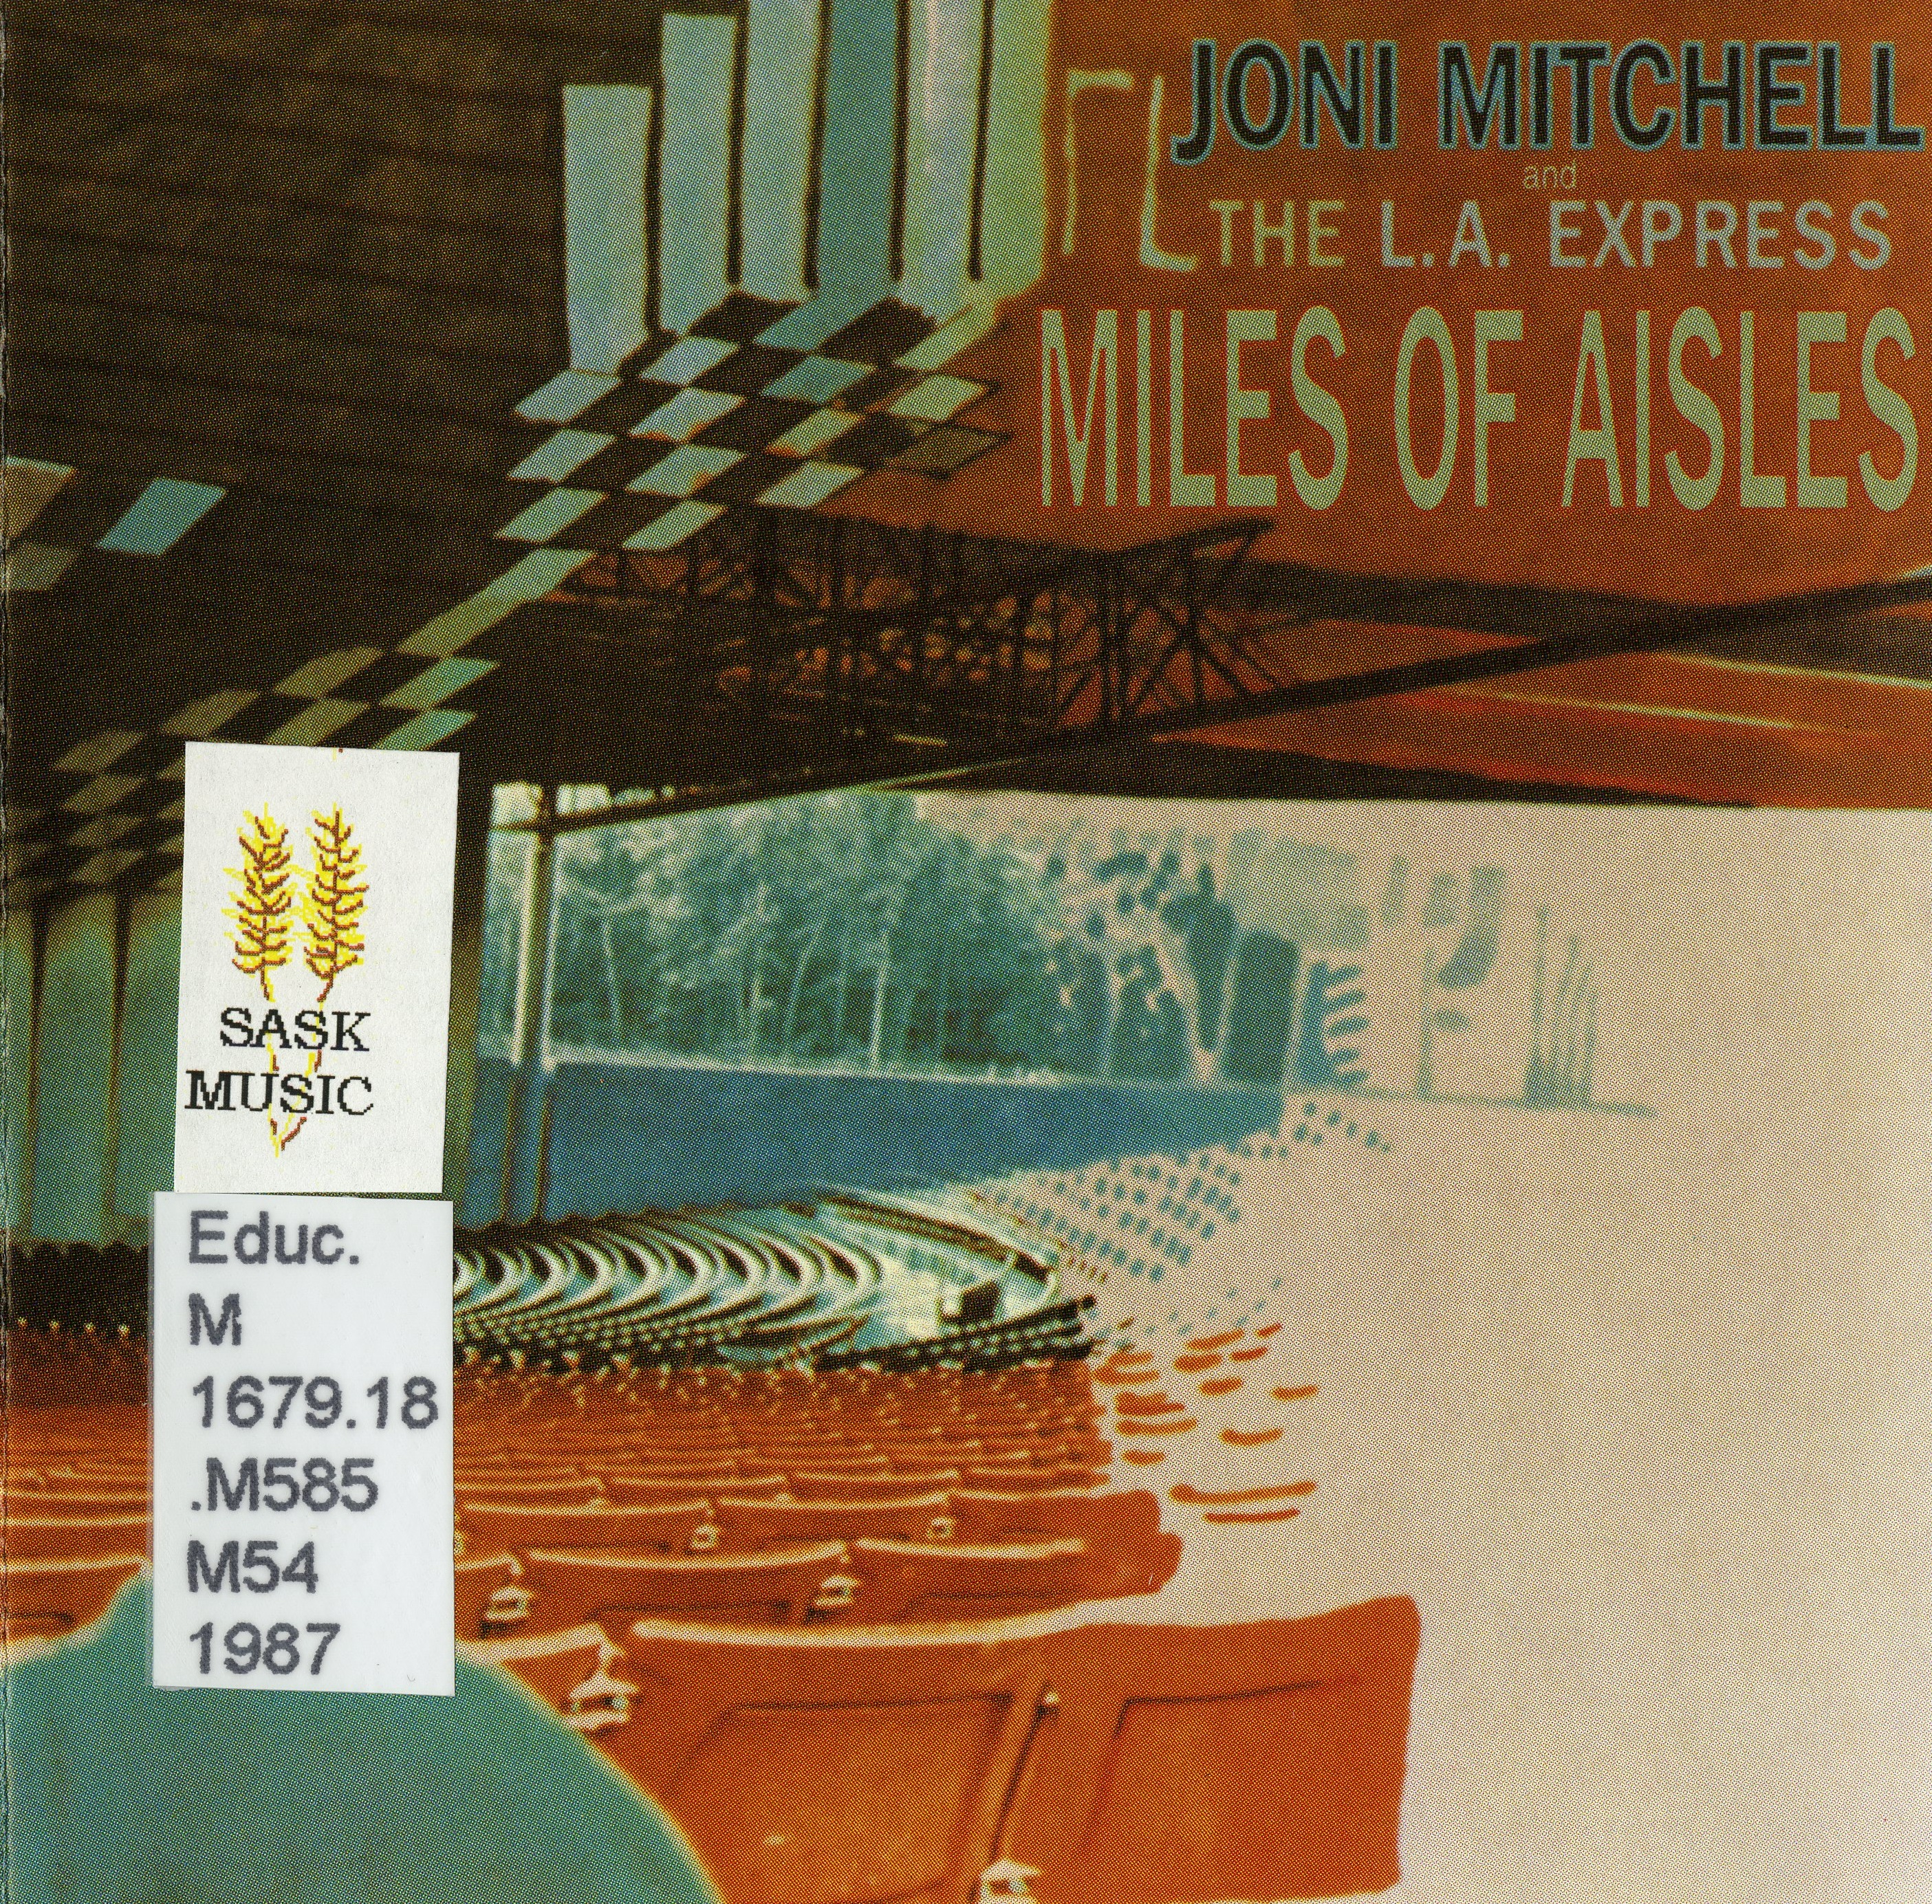 Miles of aisles